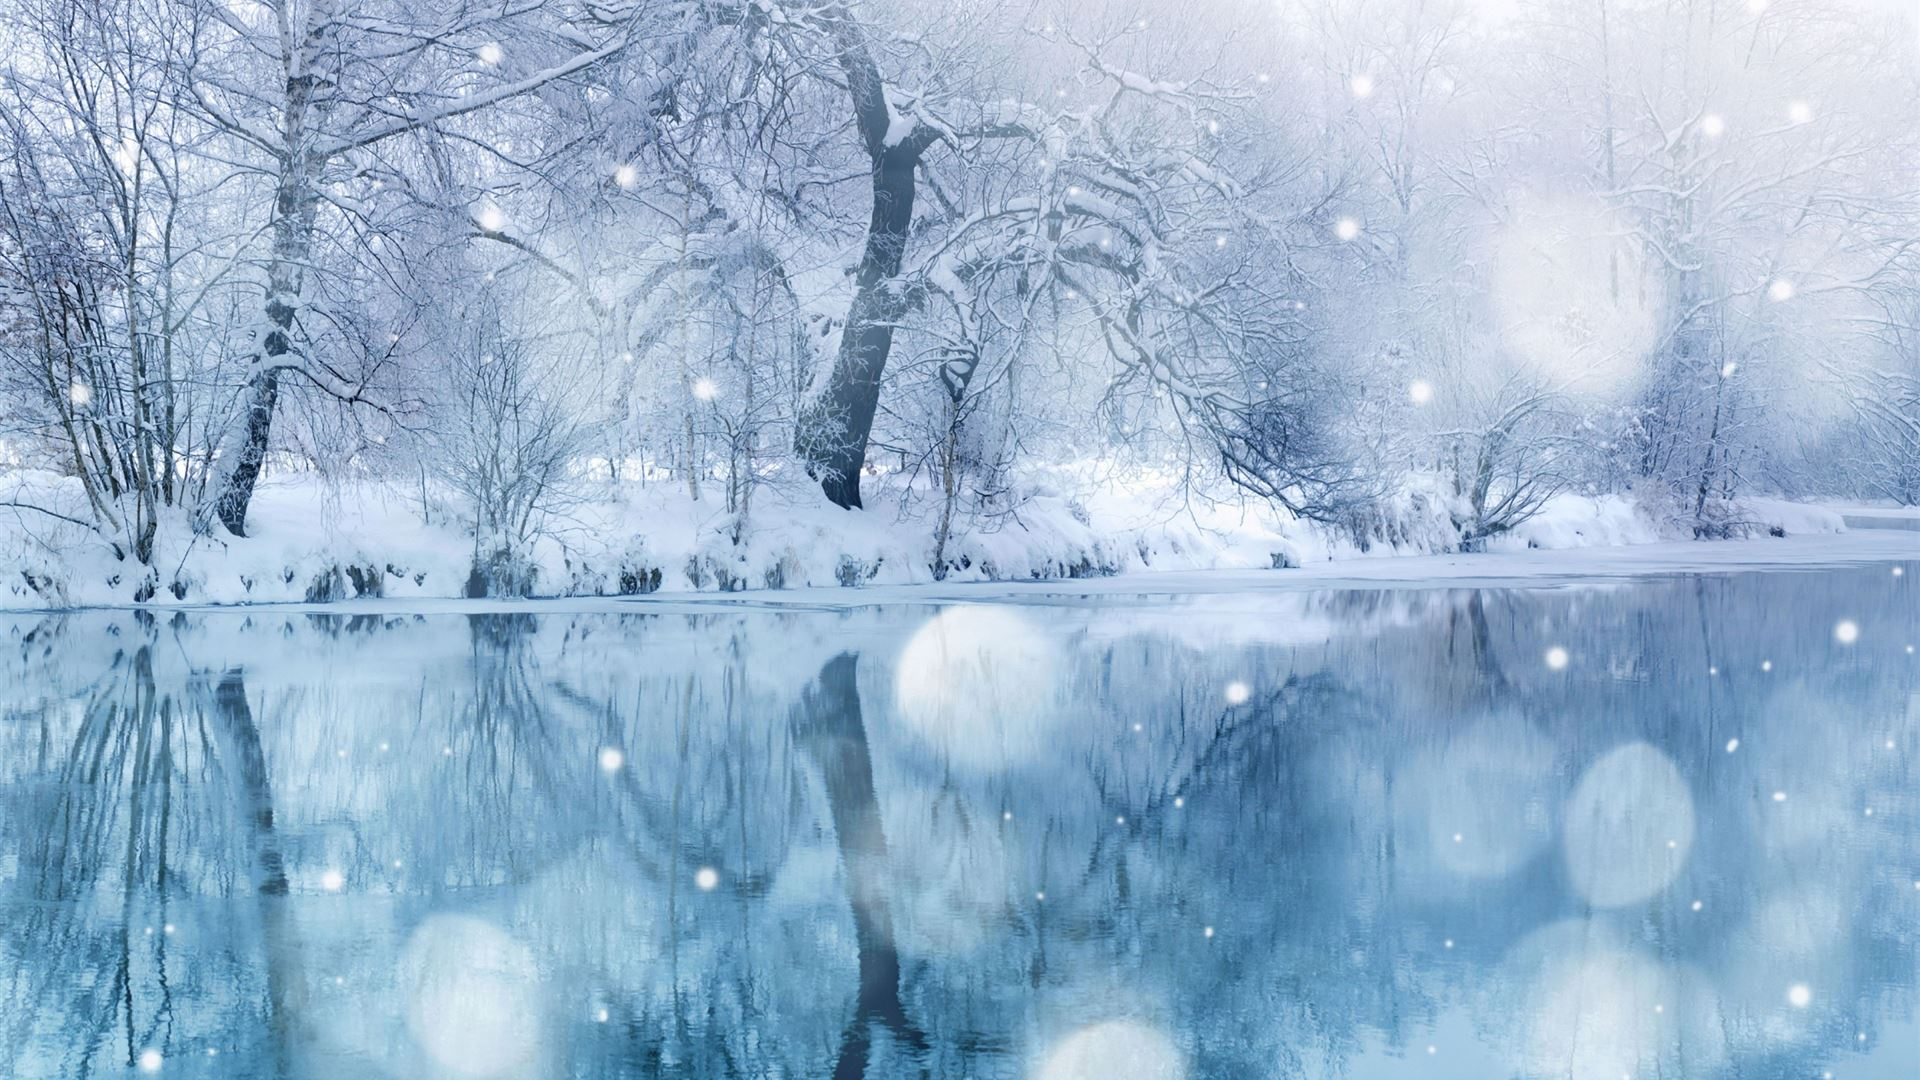 Winter Snowfall Macbook Air Wallpaper Download Allmacwallpaper